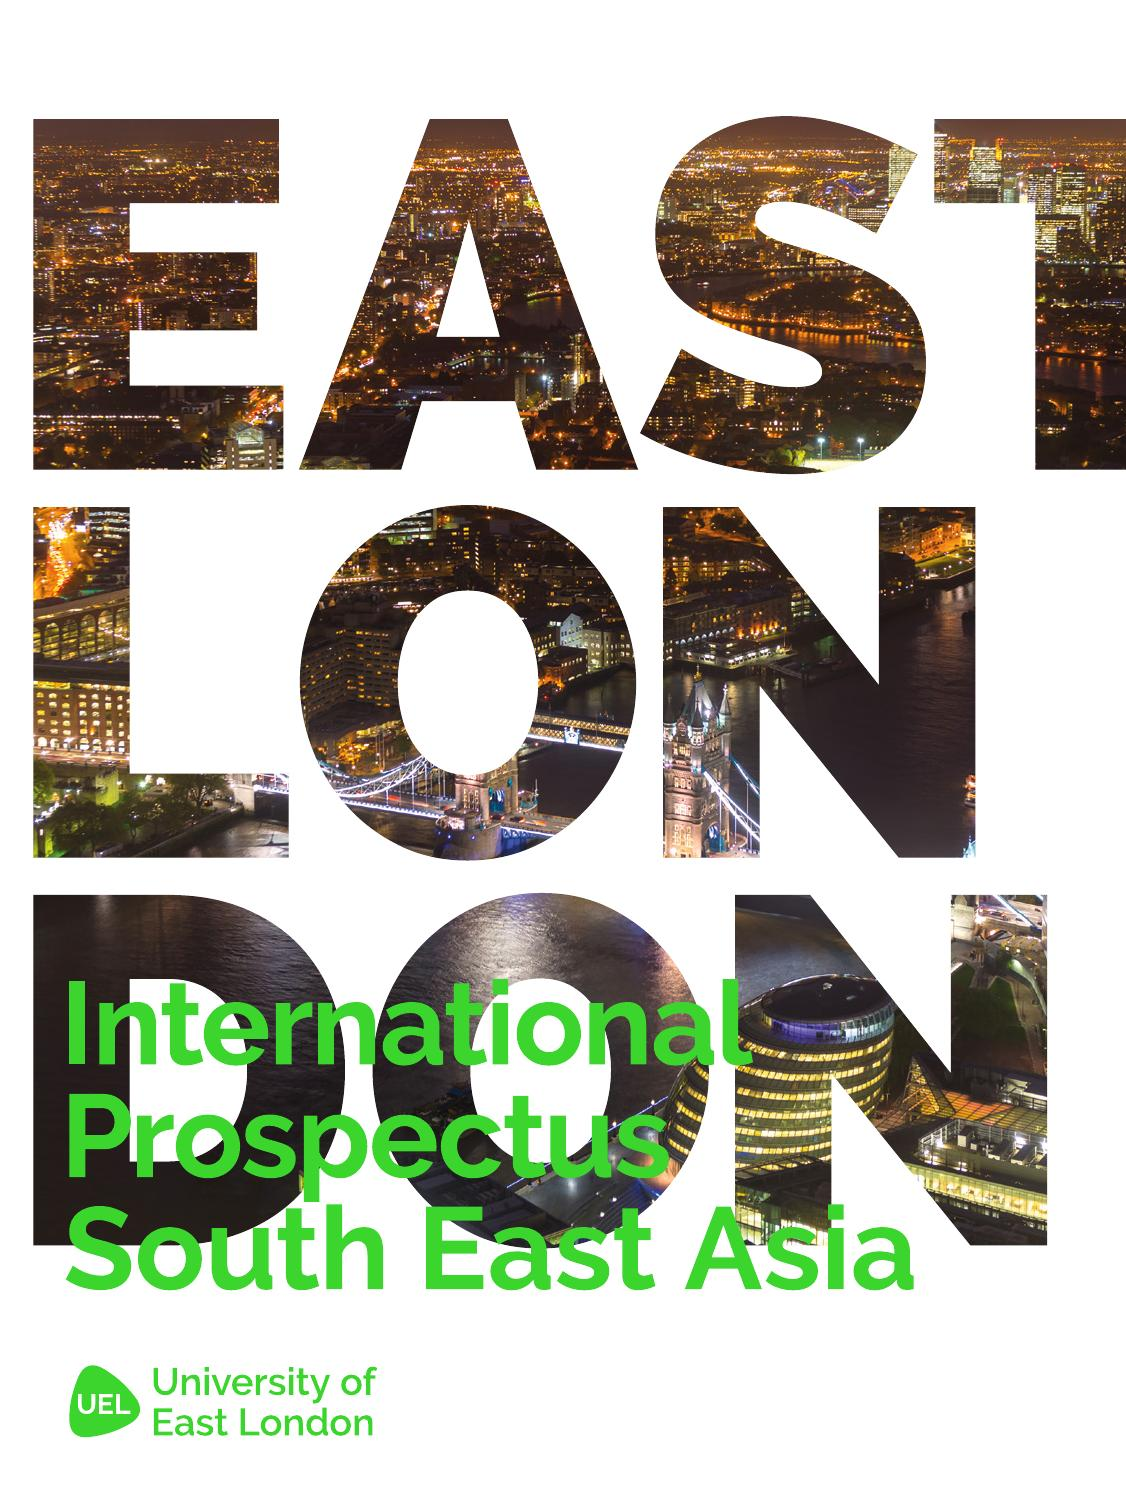 East London: University Of East London, International Prospectus South